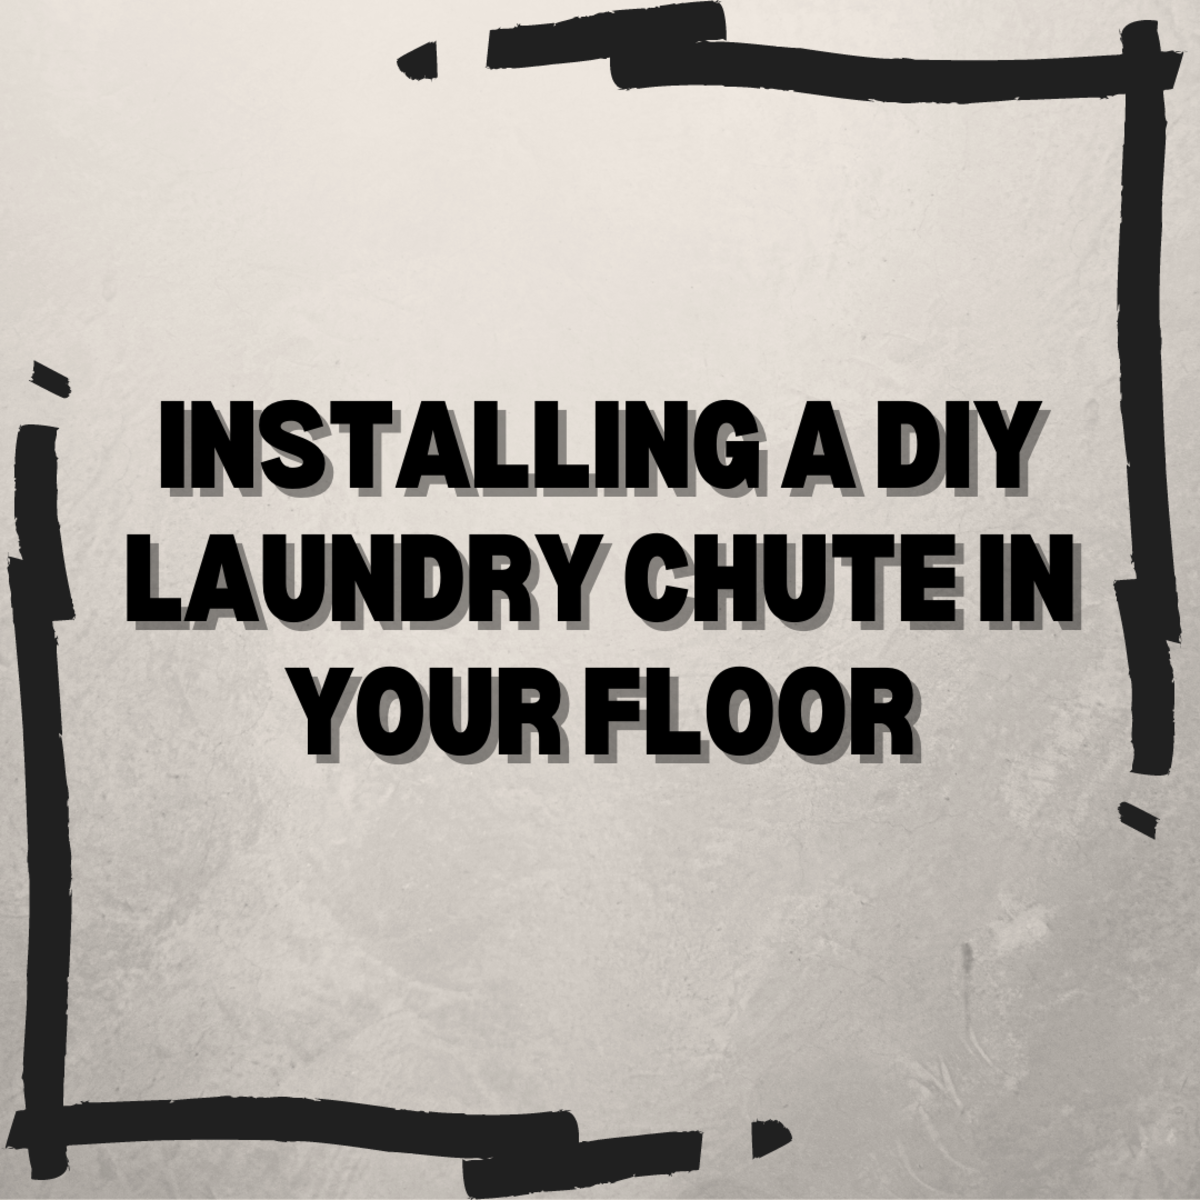 Learn how to install floor laundry chute in your home